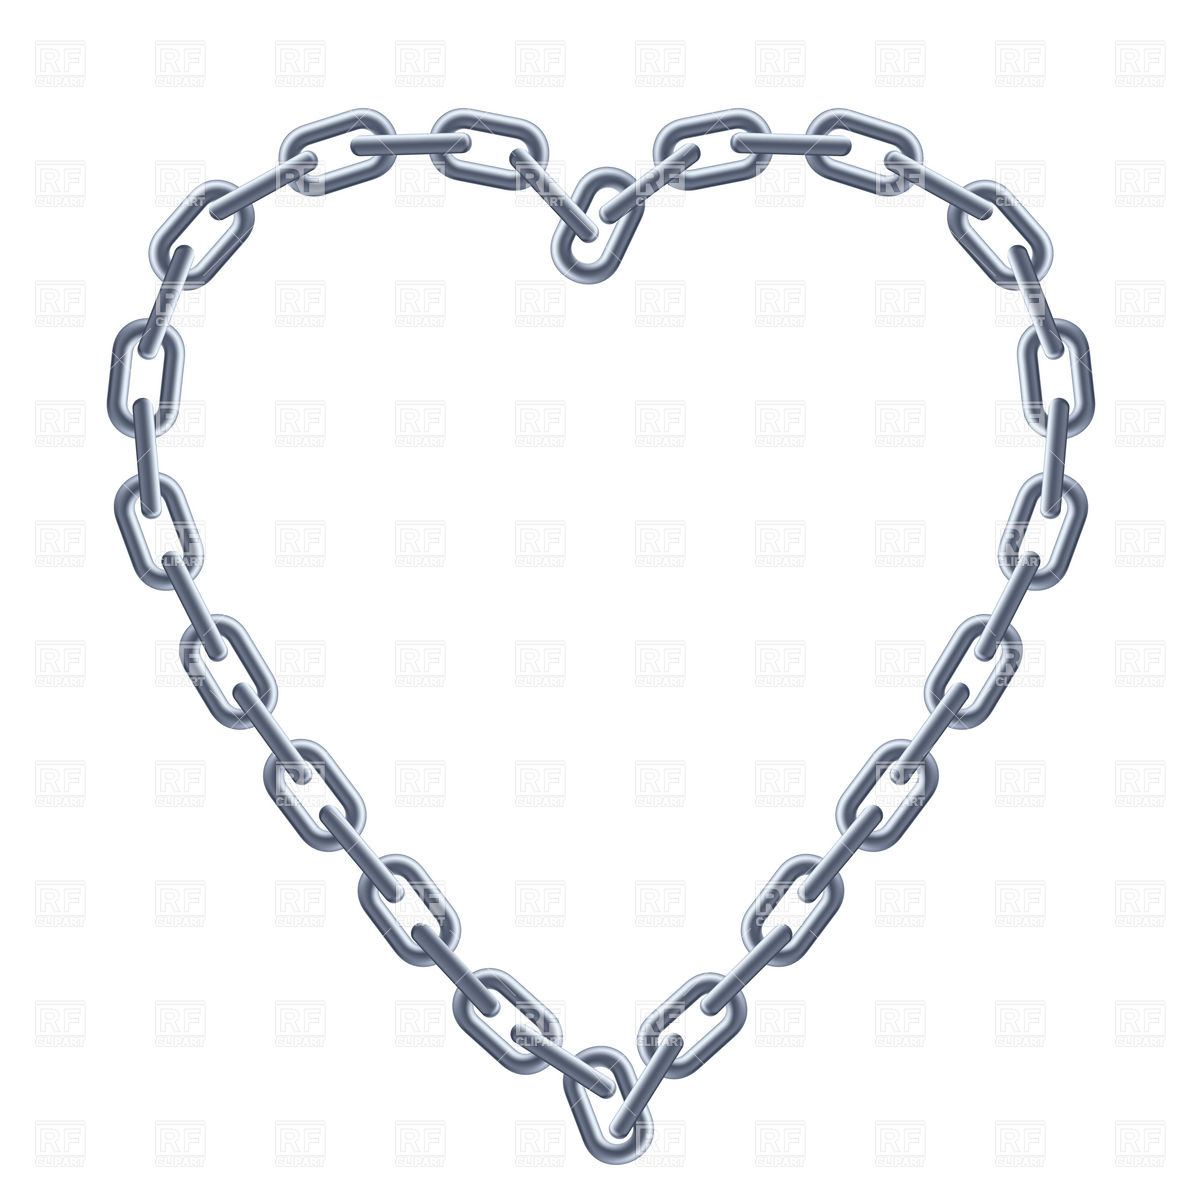 1200x1200 43 Heart Chain Link Necklace, Chain Link Heart Chain Necklace By